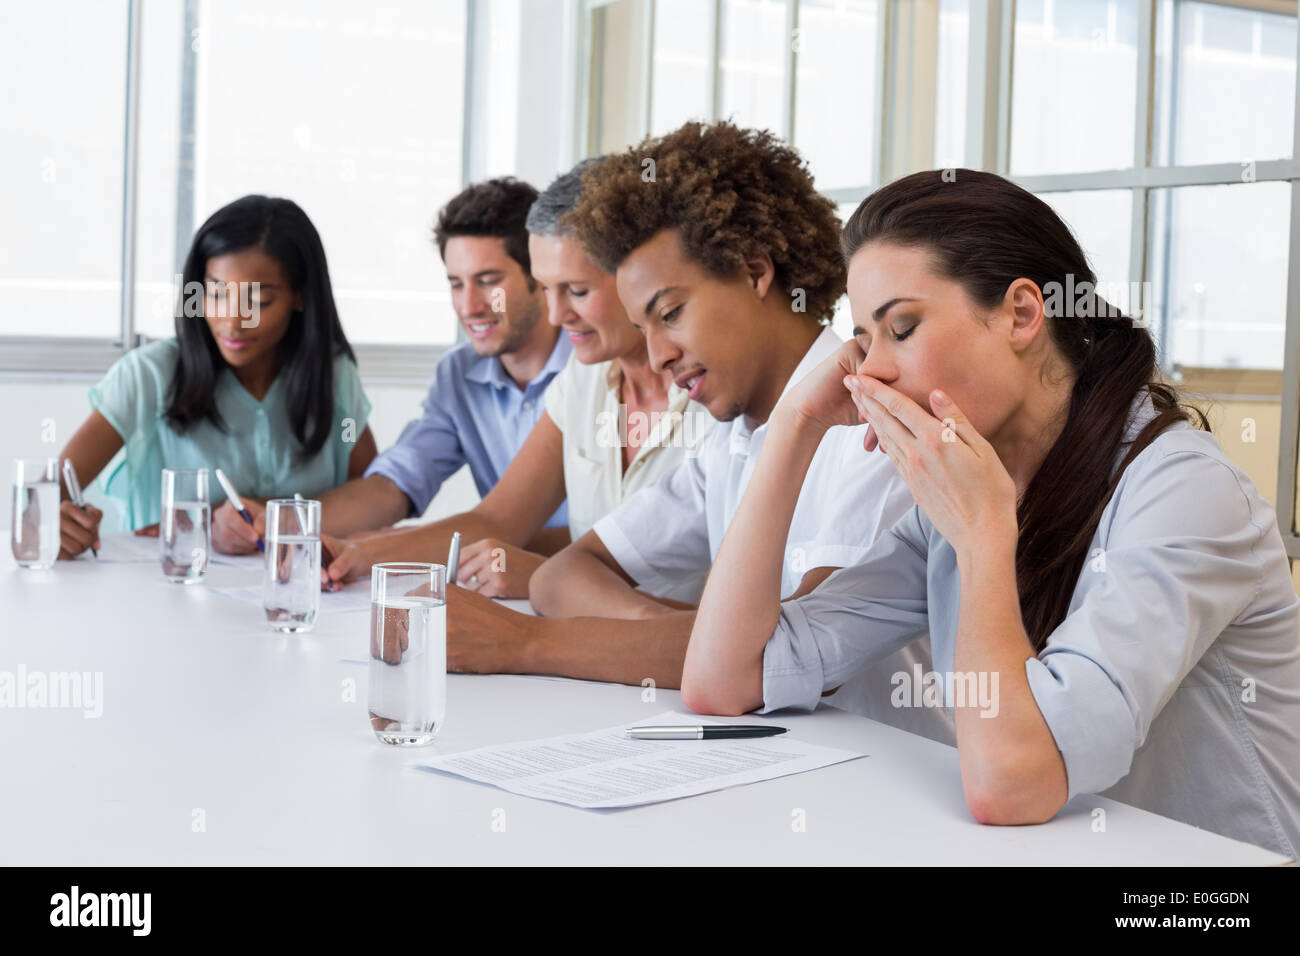 Business people yawning and being bored - Stock Image